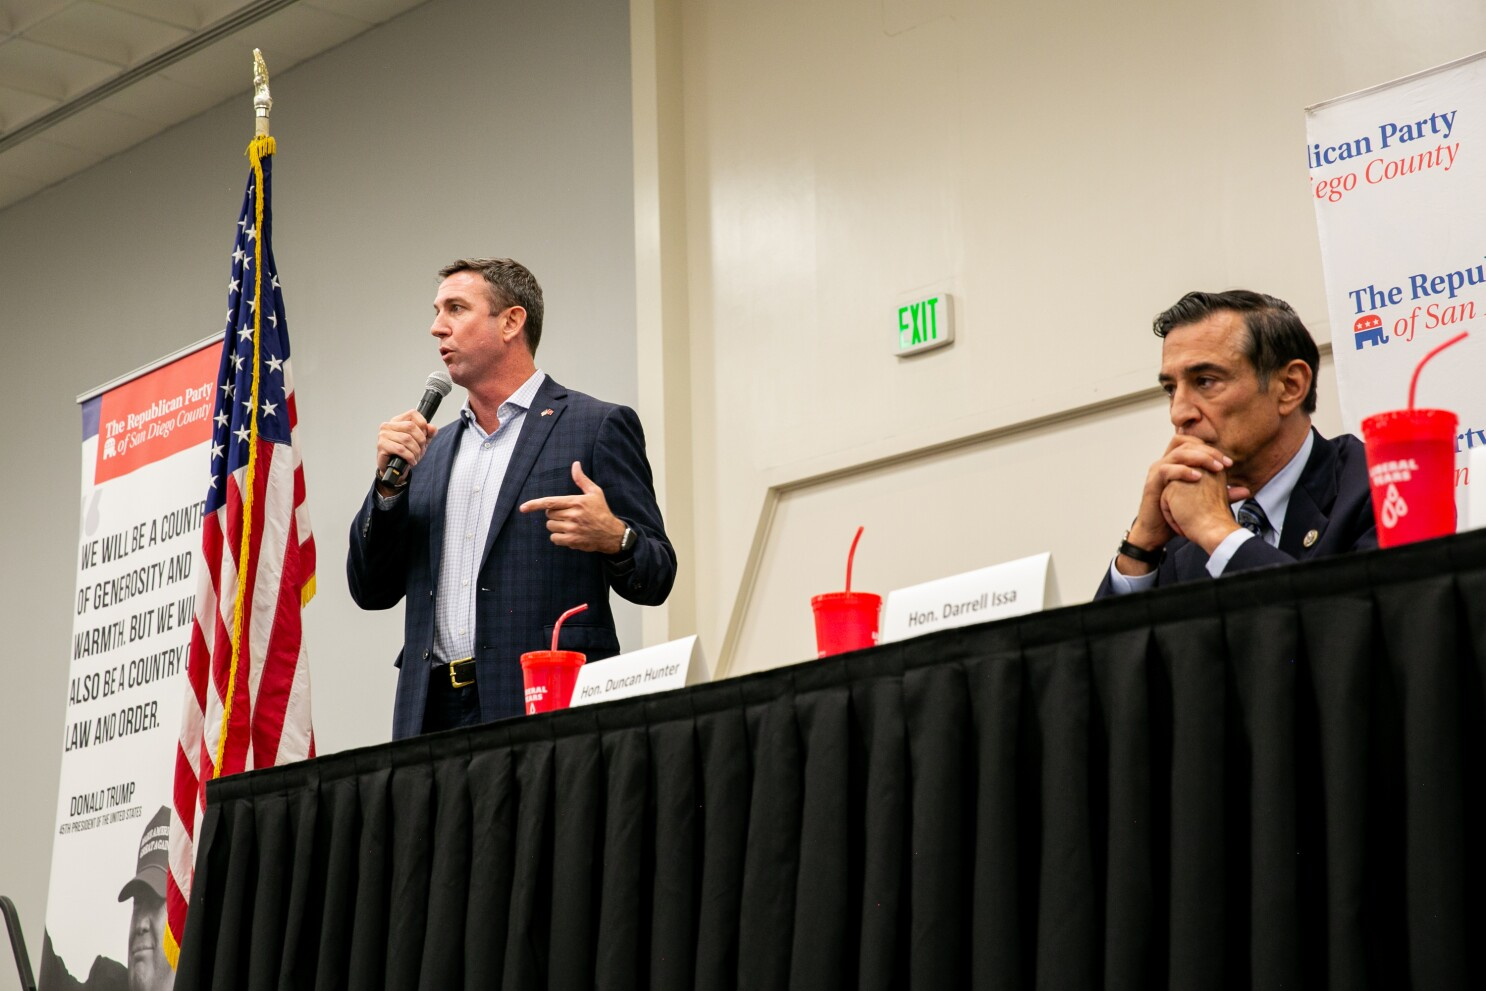 Rep. Duncan Hunter reports spending on campaign mail and legal defense, plus two bar visits and a dove hunt